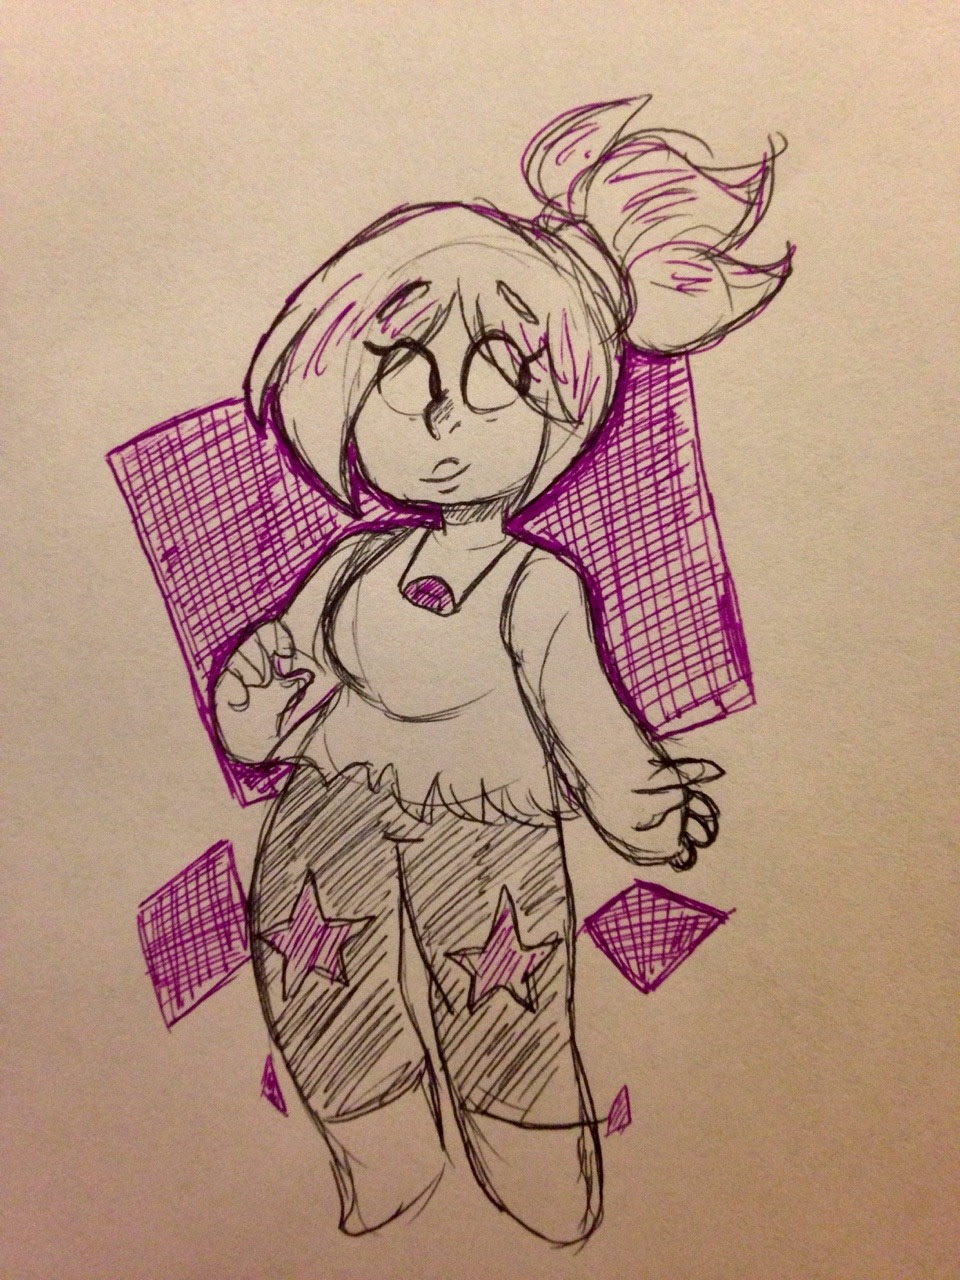 Day 13 of Inktober is Amethyst 💜